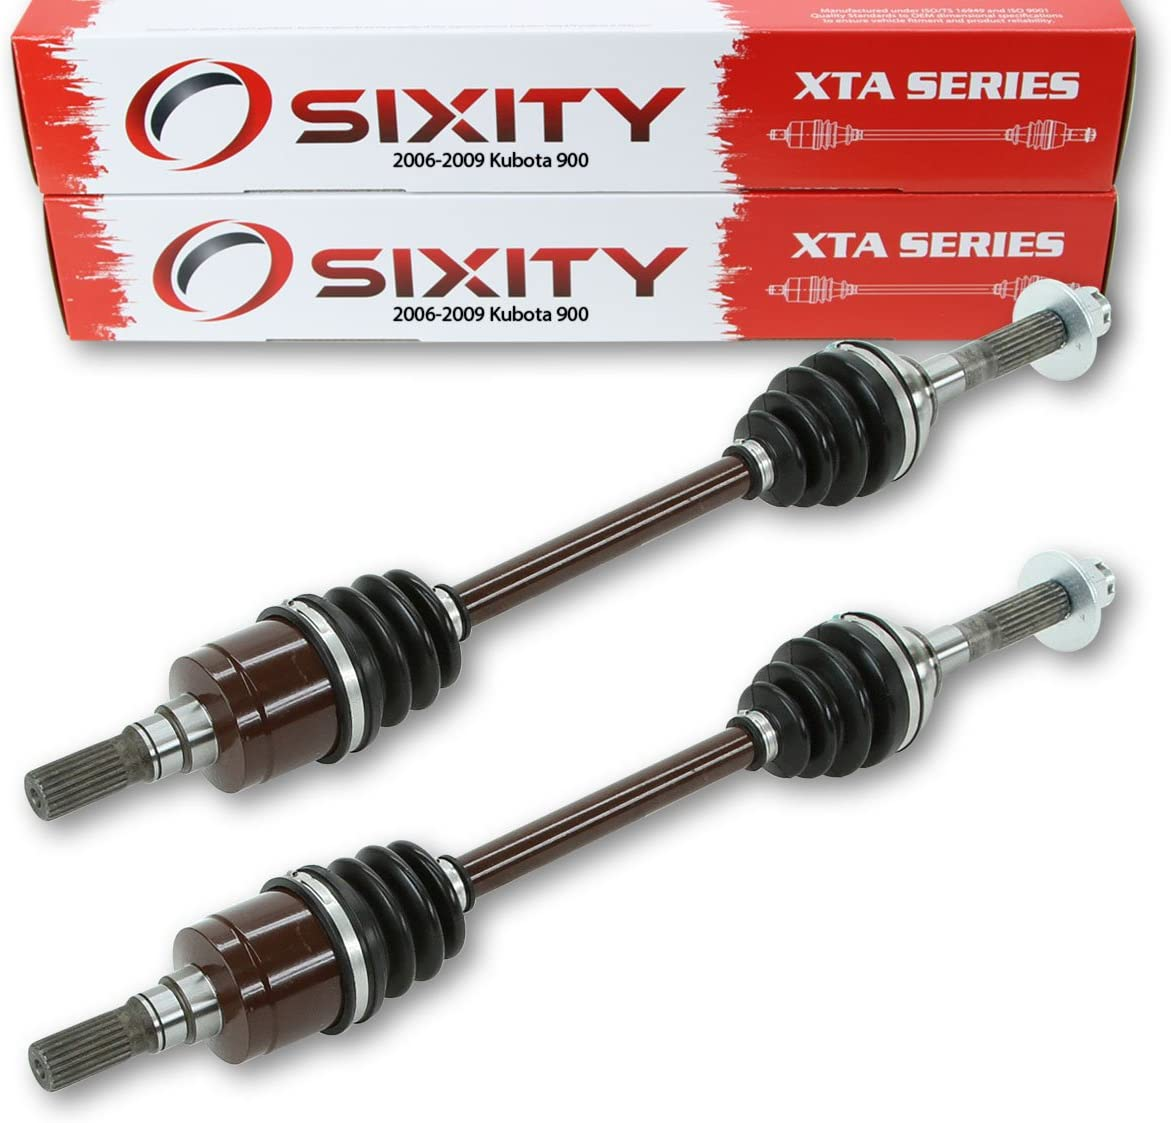 Sixity 2006-2009 for Kubota 900 4X4 Front Left Right Axles Pair Driver Passenger RTV900W6 Complete Side